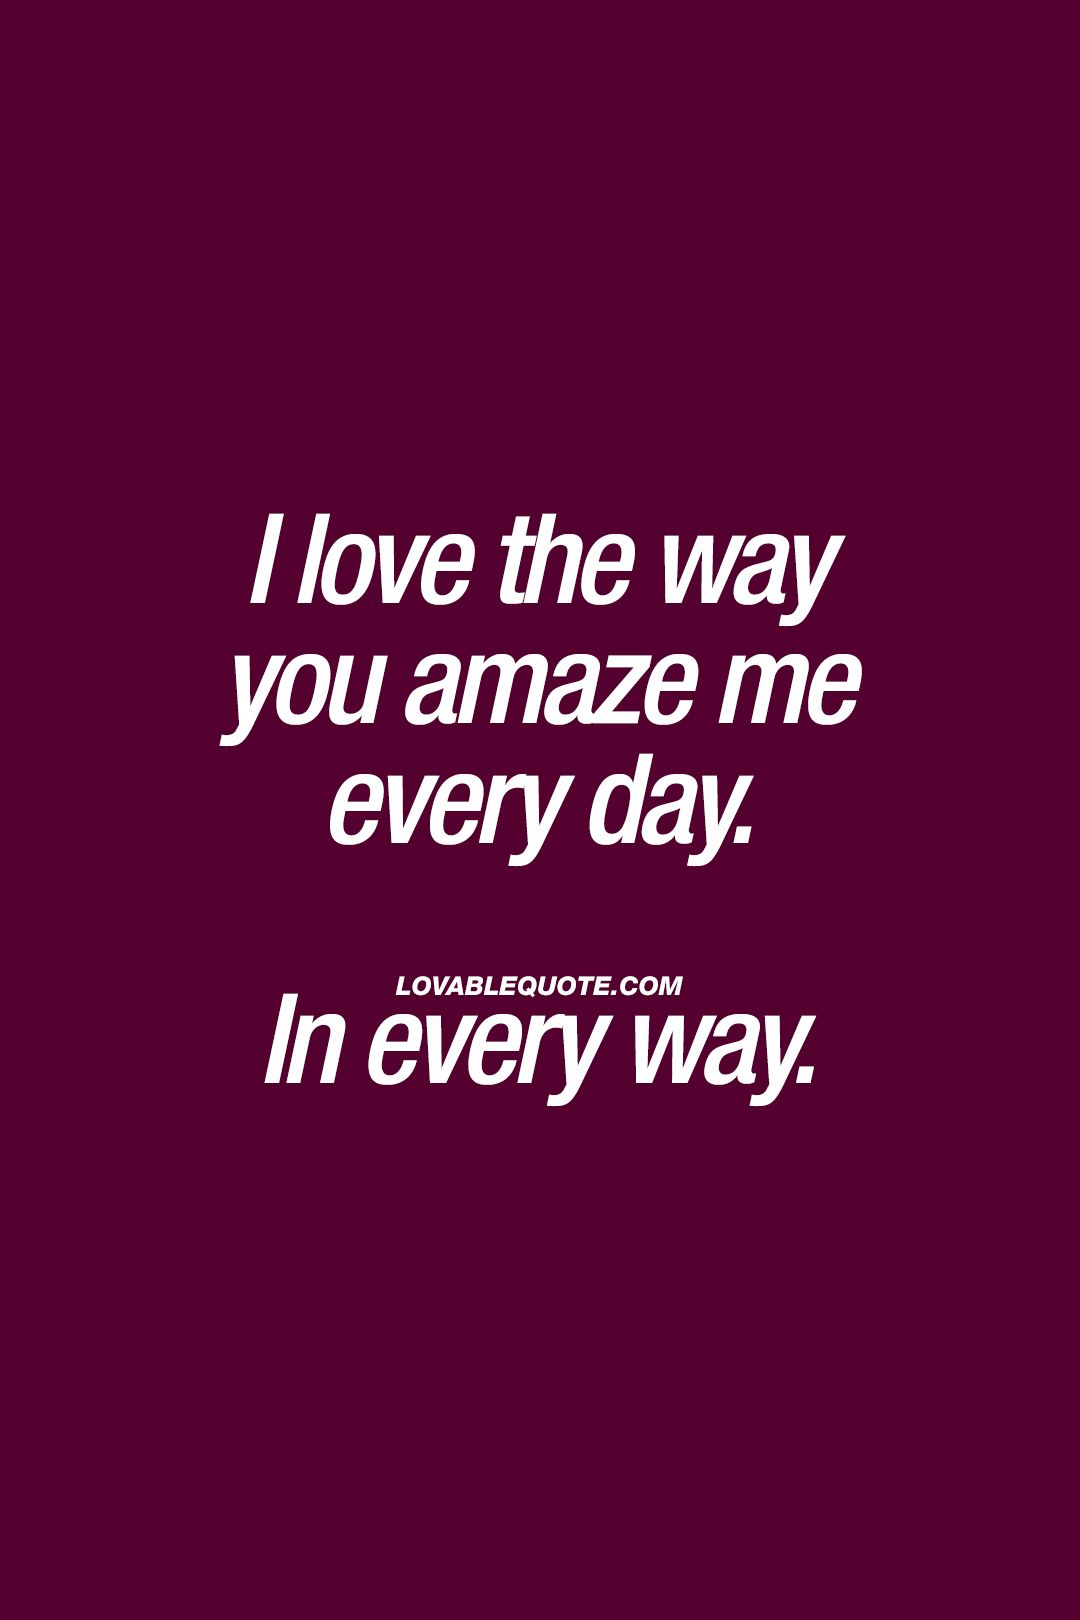 You Never Cease To Amaze Me Quotes, Quotations & Sayings 2021